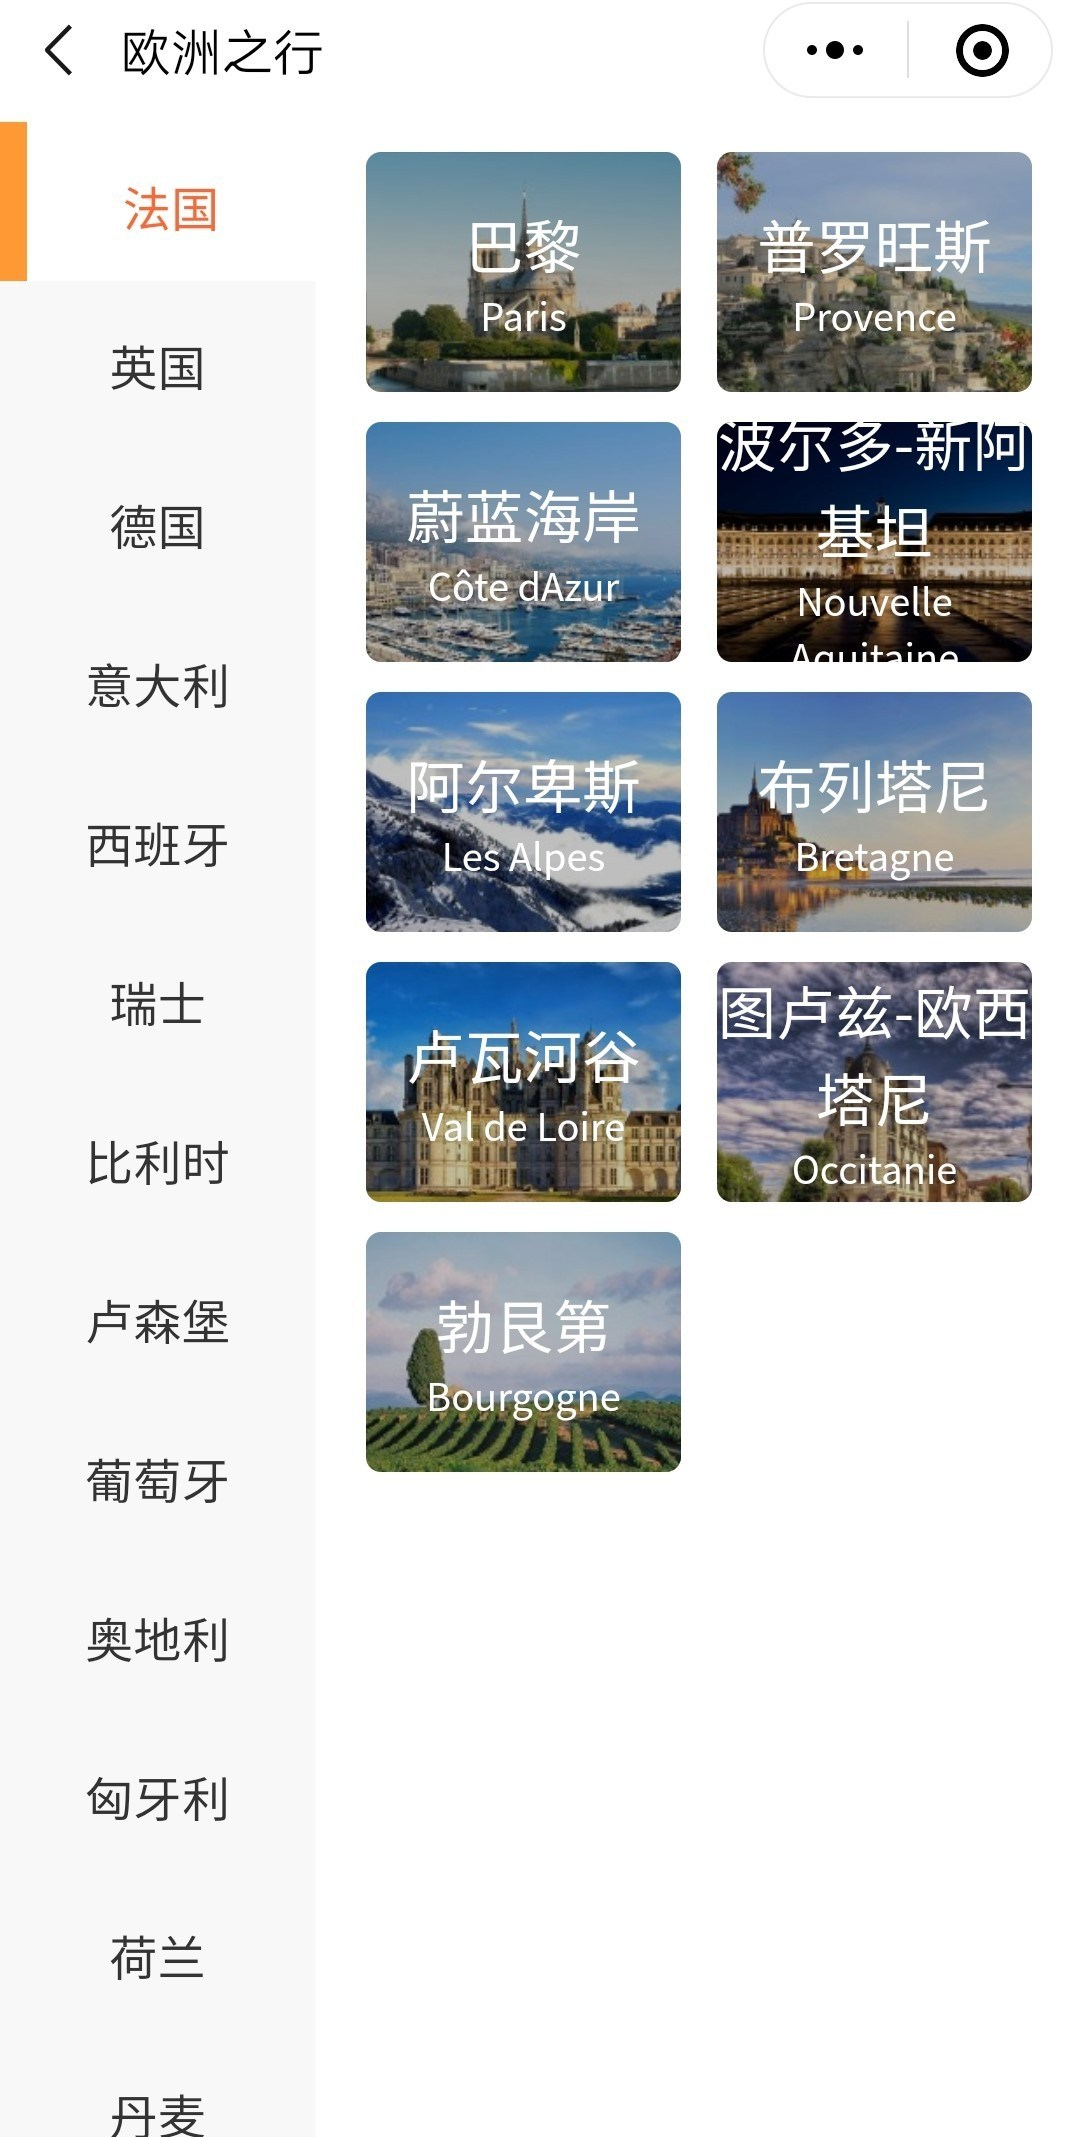 France Tourism Wechat Mini-Program - WeChat Travel Experience - EuroPass